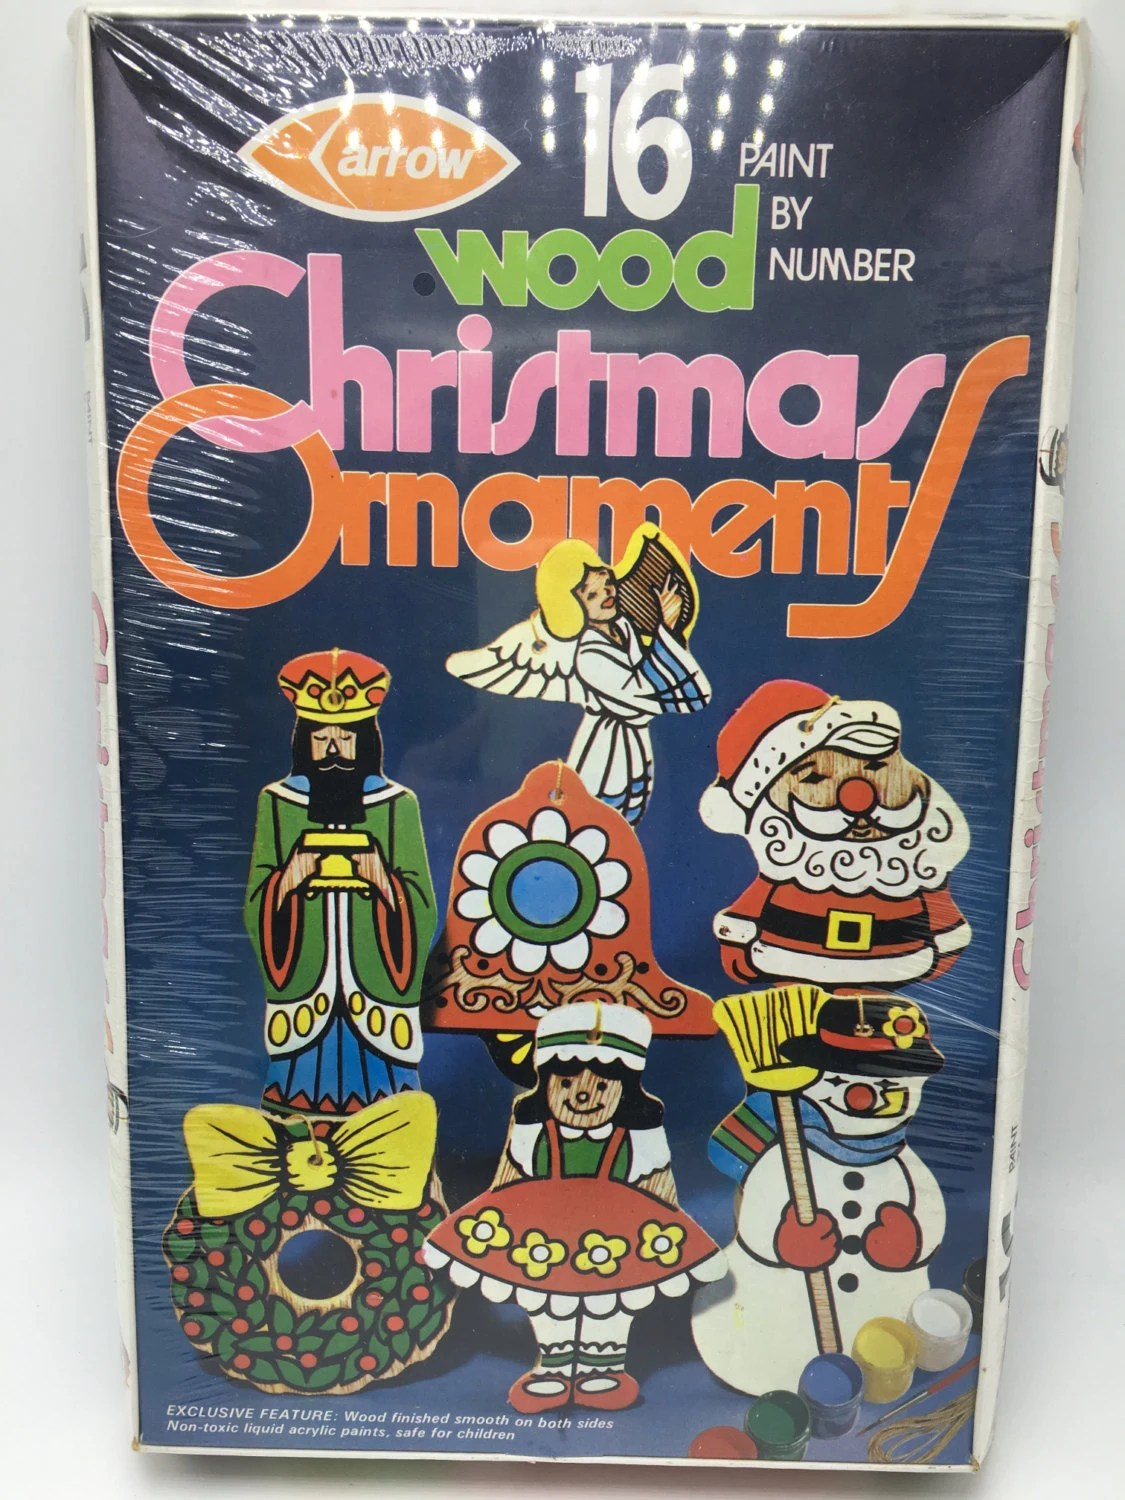 Vintage Arrow Paint By Number Wood Christmas Ornaments Kit